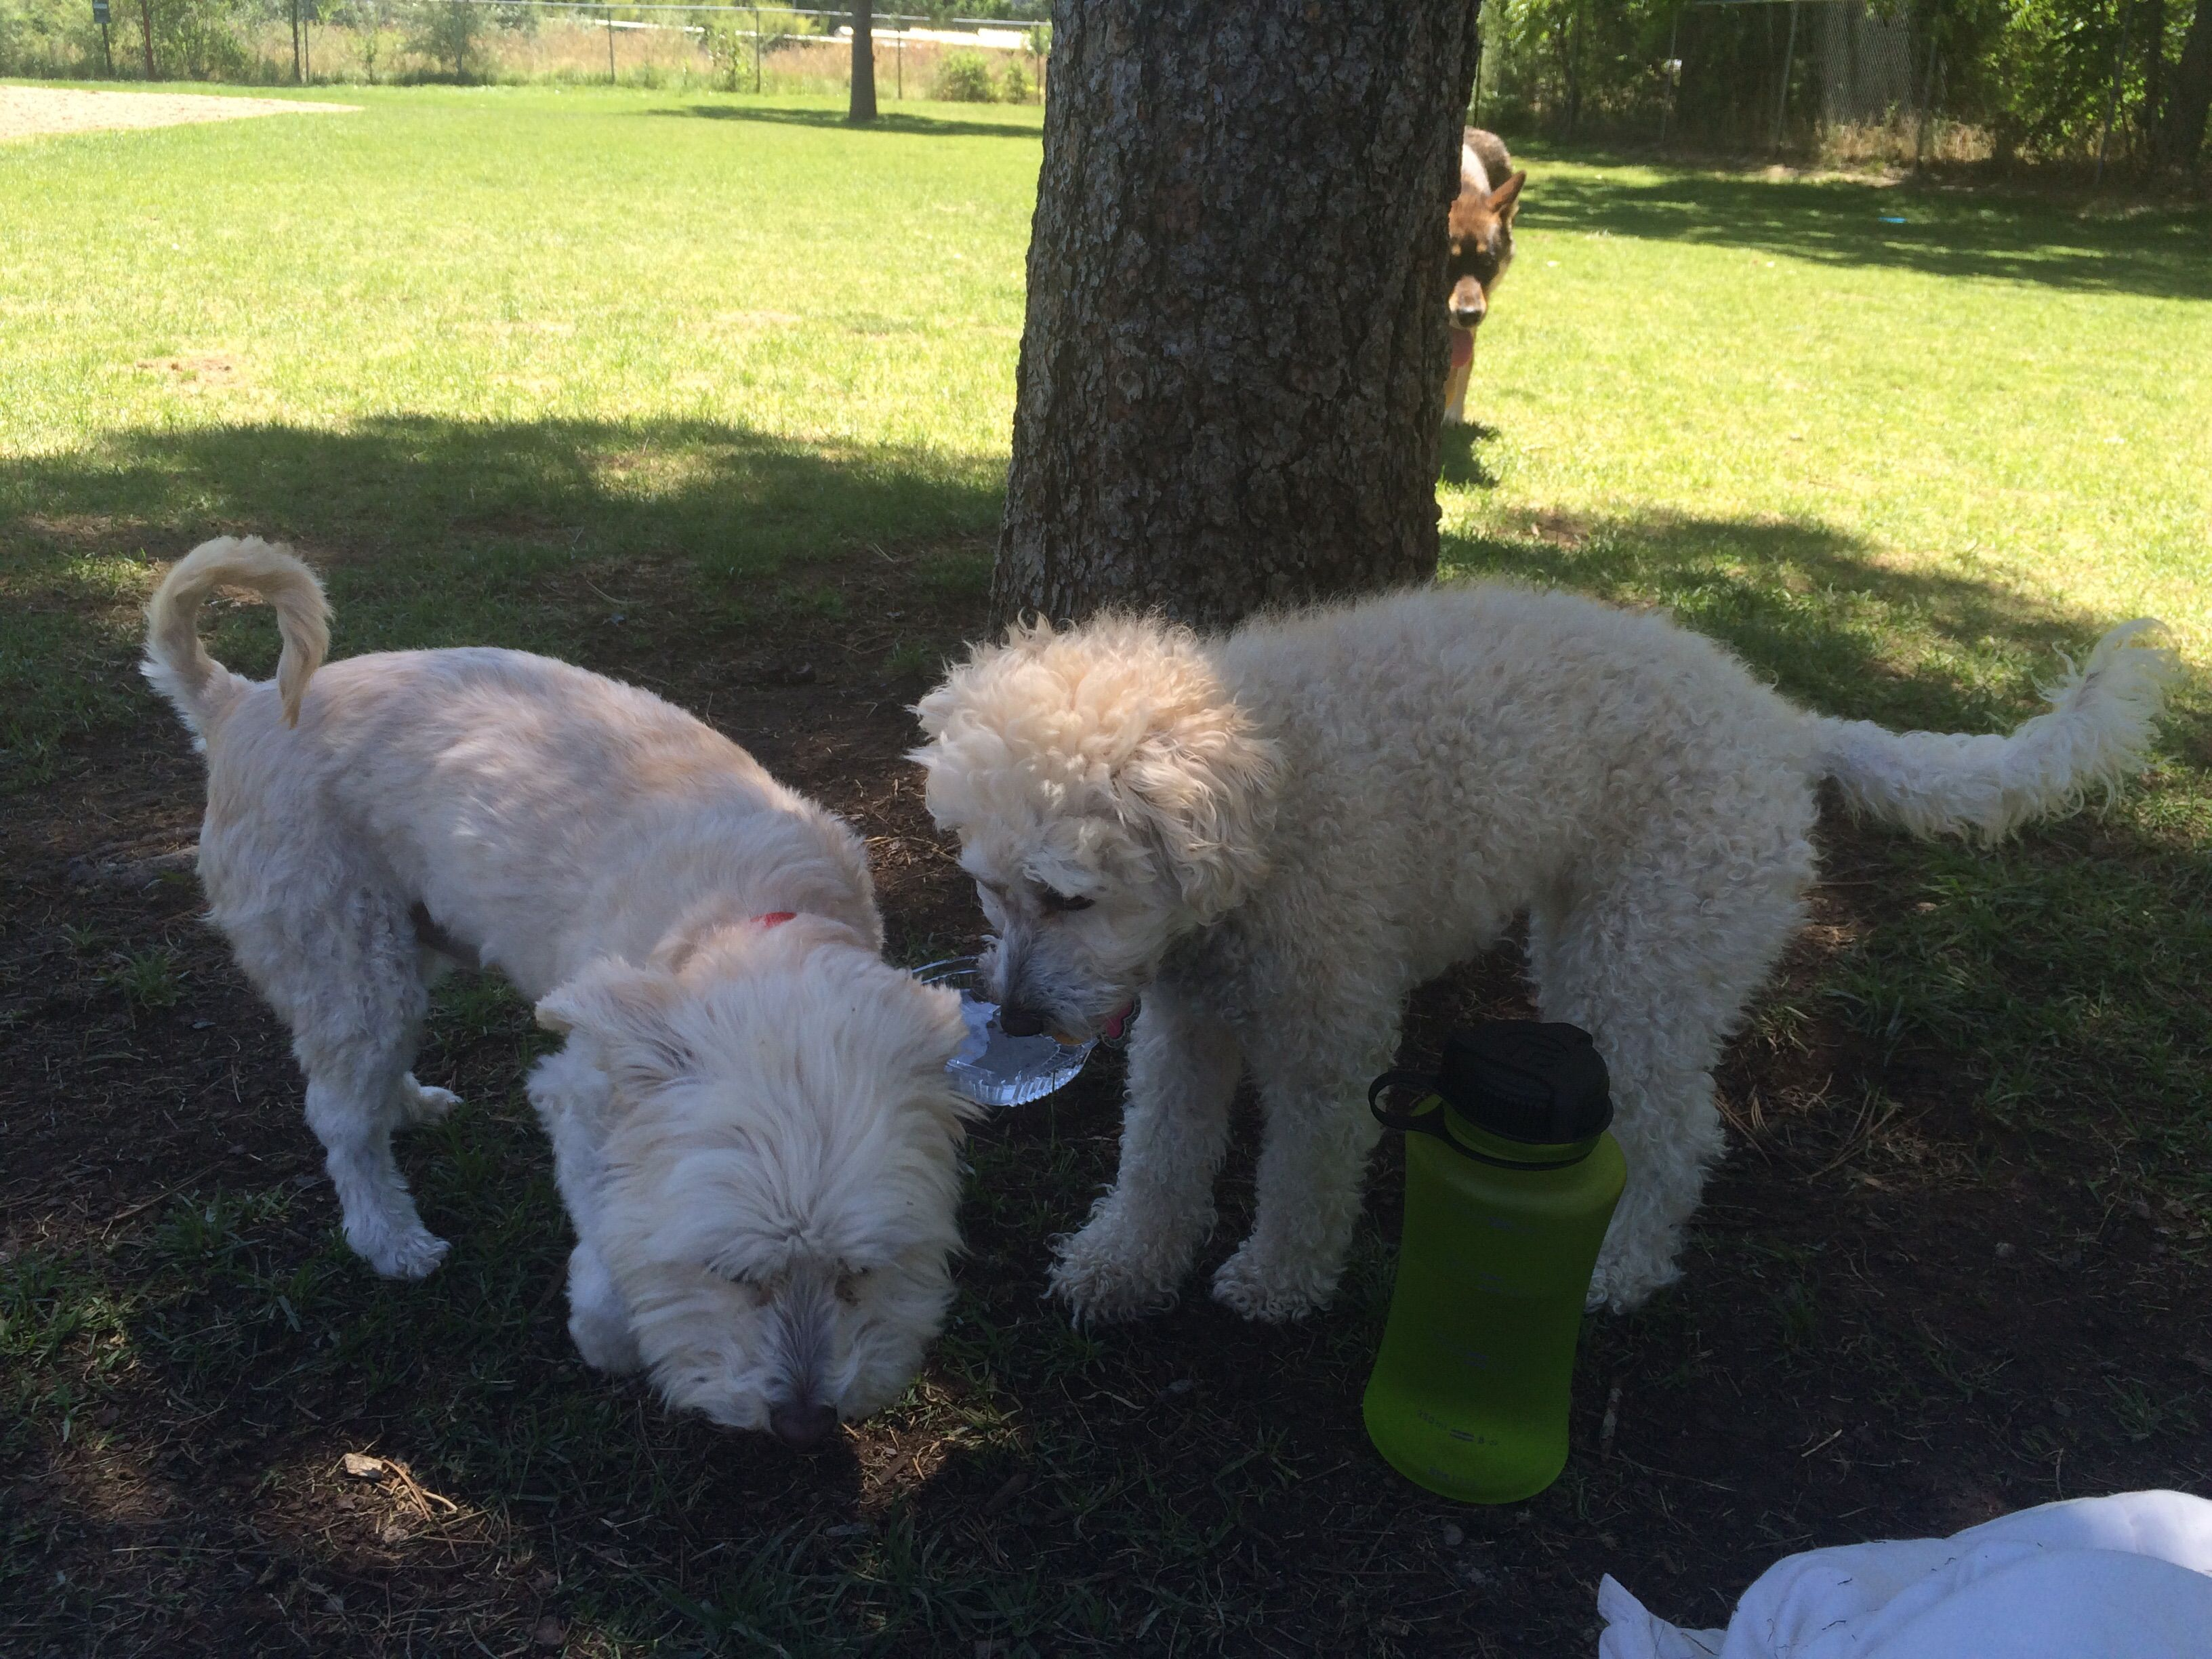 The City S First Off Leash Dog Park Features A Double Fenced Entry Doggie Waste Stations And A Fun Fire Hydrant Dogs Of All Sizes Ar Dog Park Dogs Dog Leash